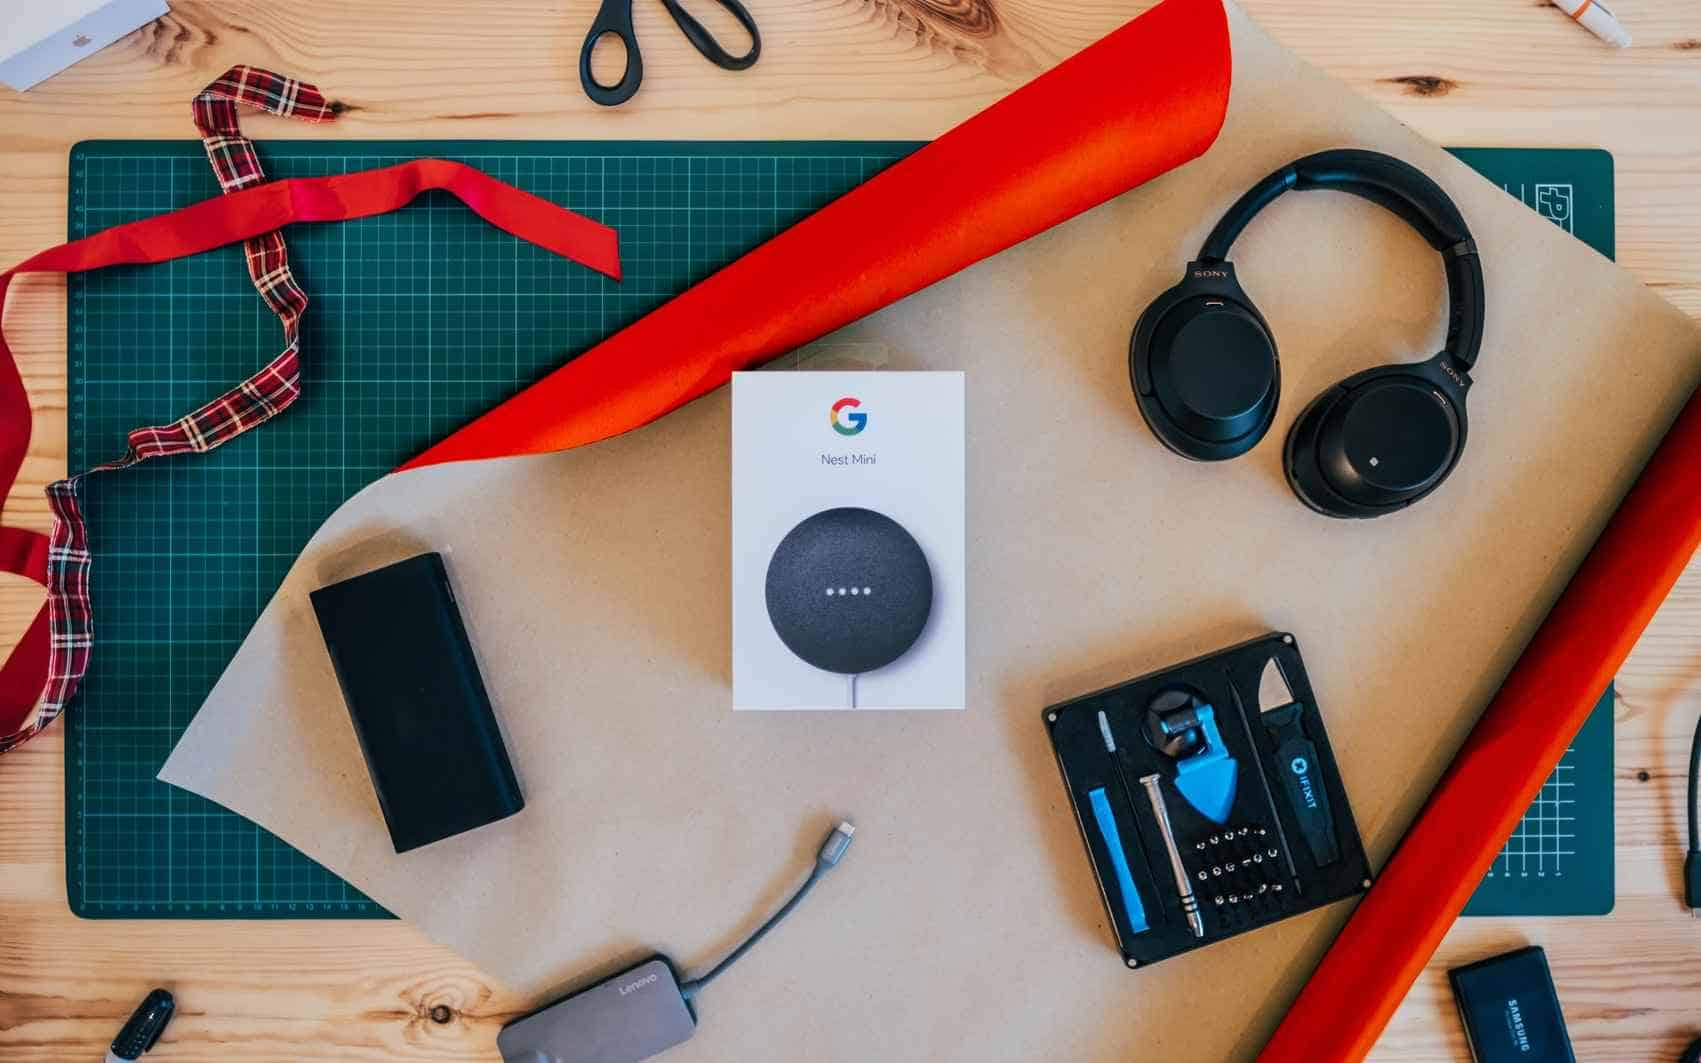 Tech Gifts For Christmas 2020 9 Best Tech Gifts Ideas in 2020   The Tech Toys